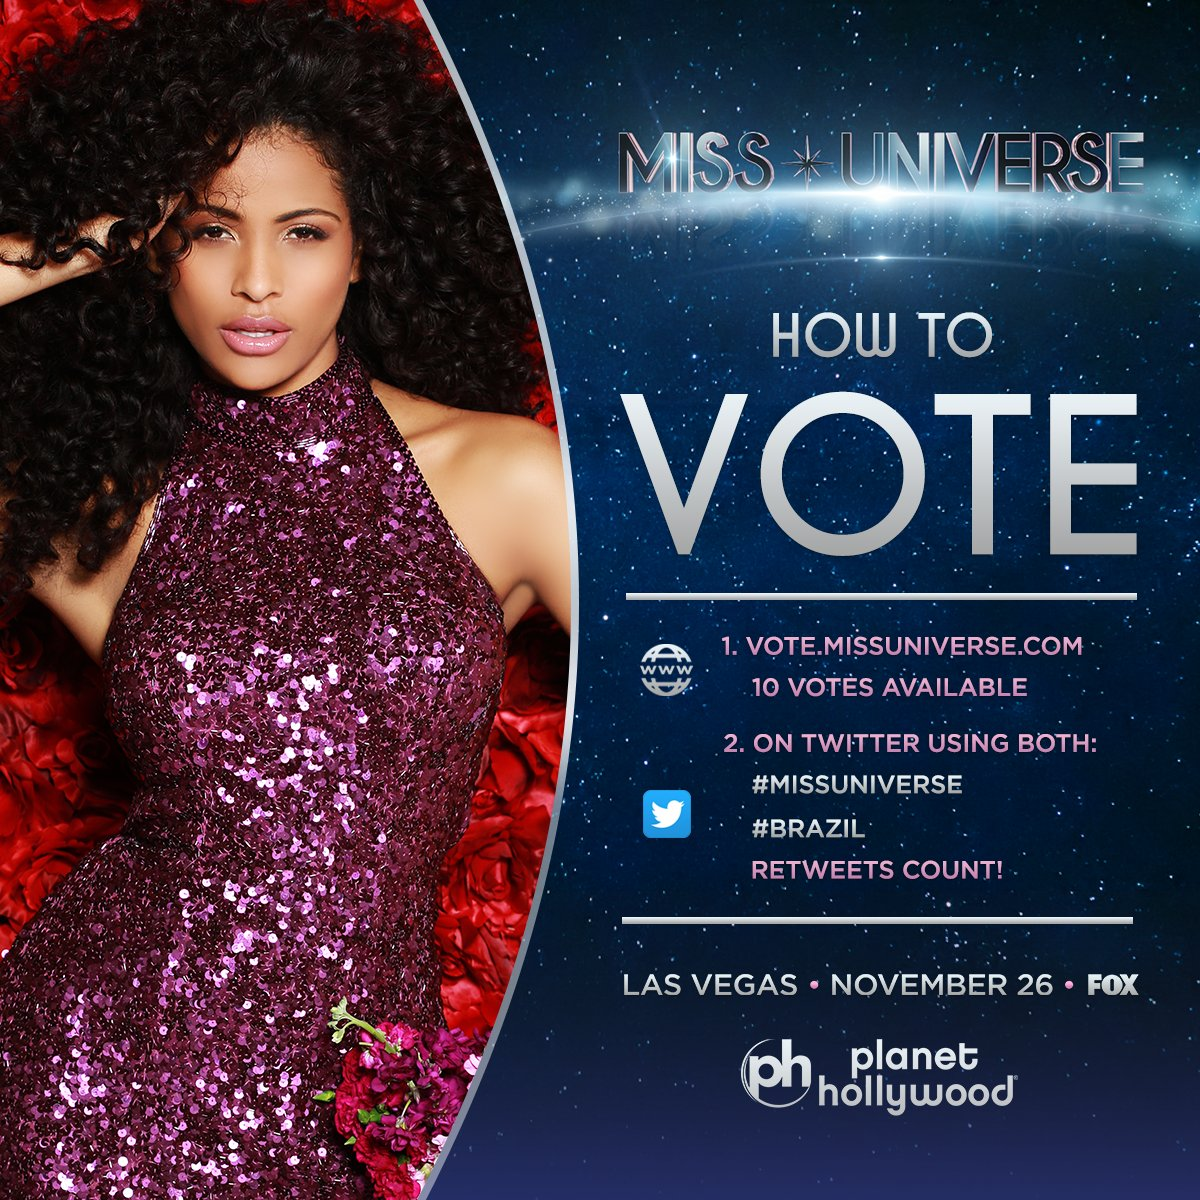 Voting for #MissUniverse is officially OPEN. RT to vote for Miss Universe #Brazil!   Watch her LIVE: Sunday Nov. 26 at 7PM on @FOXTV.